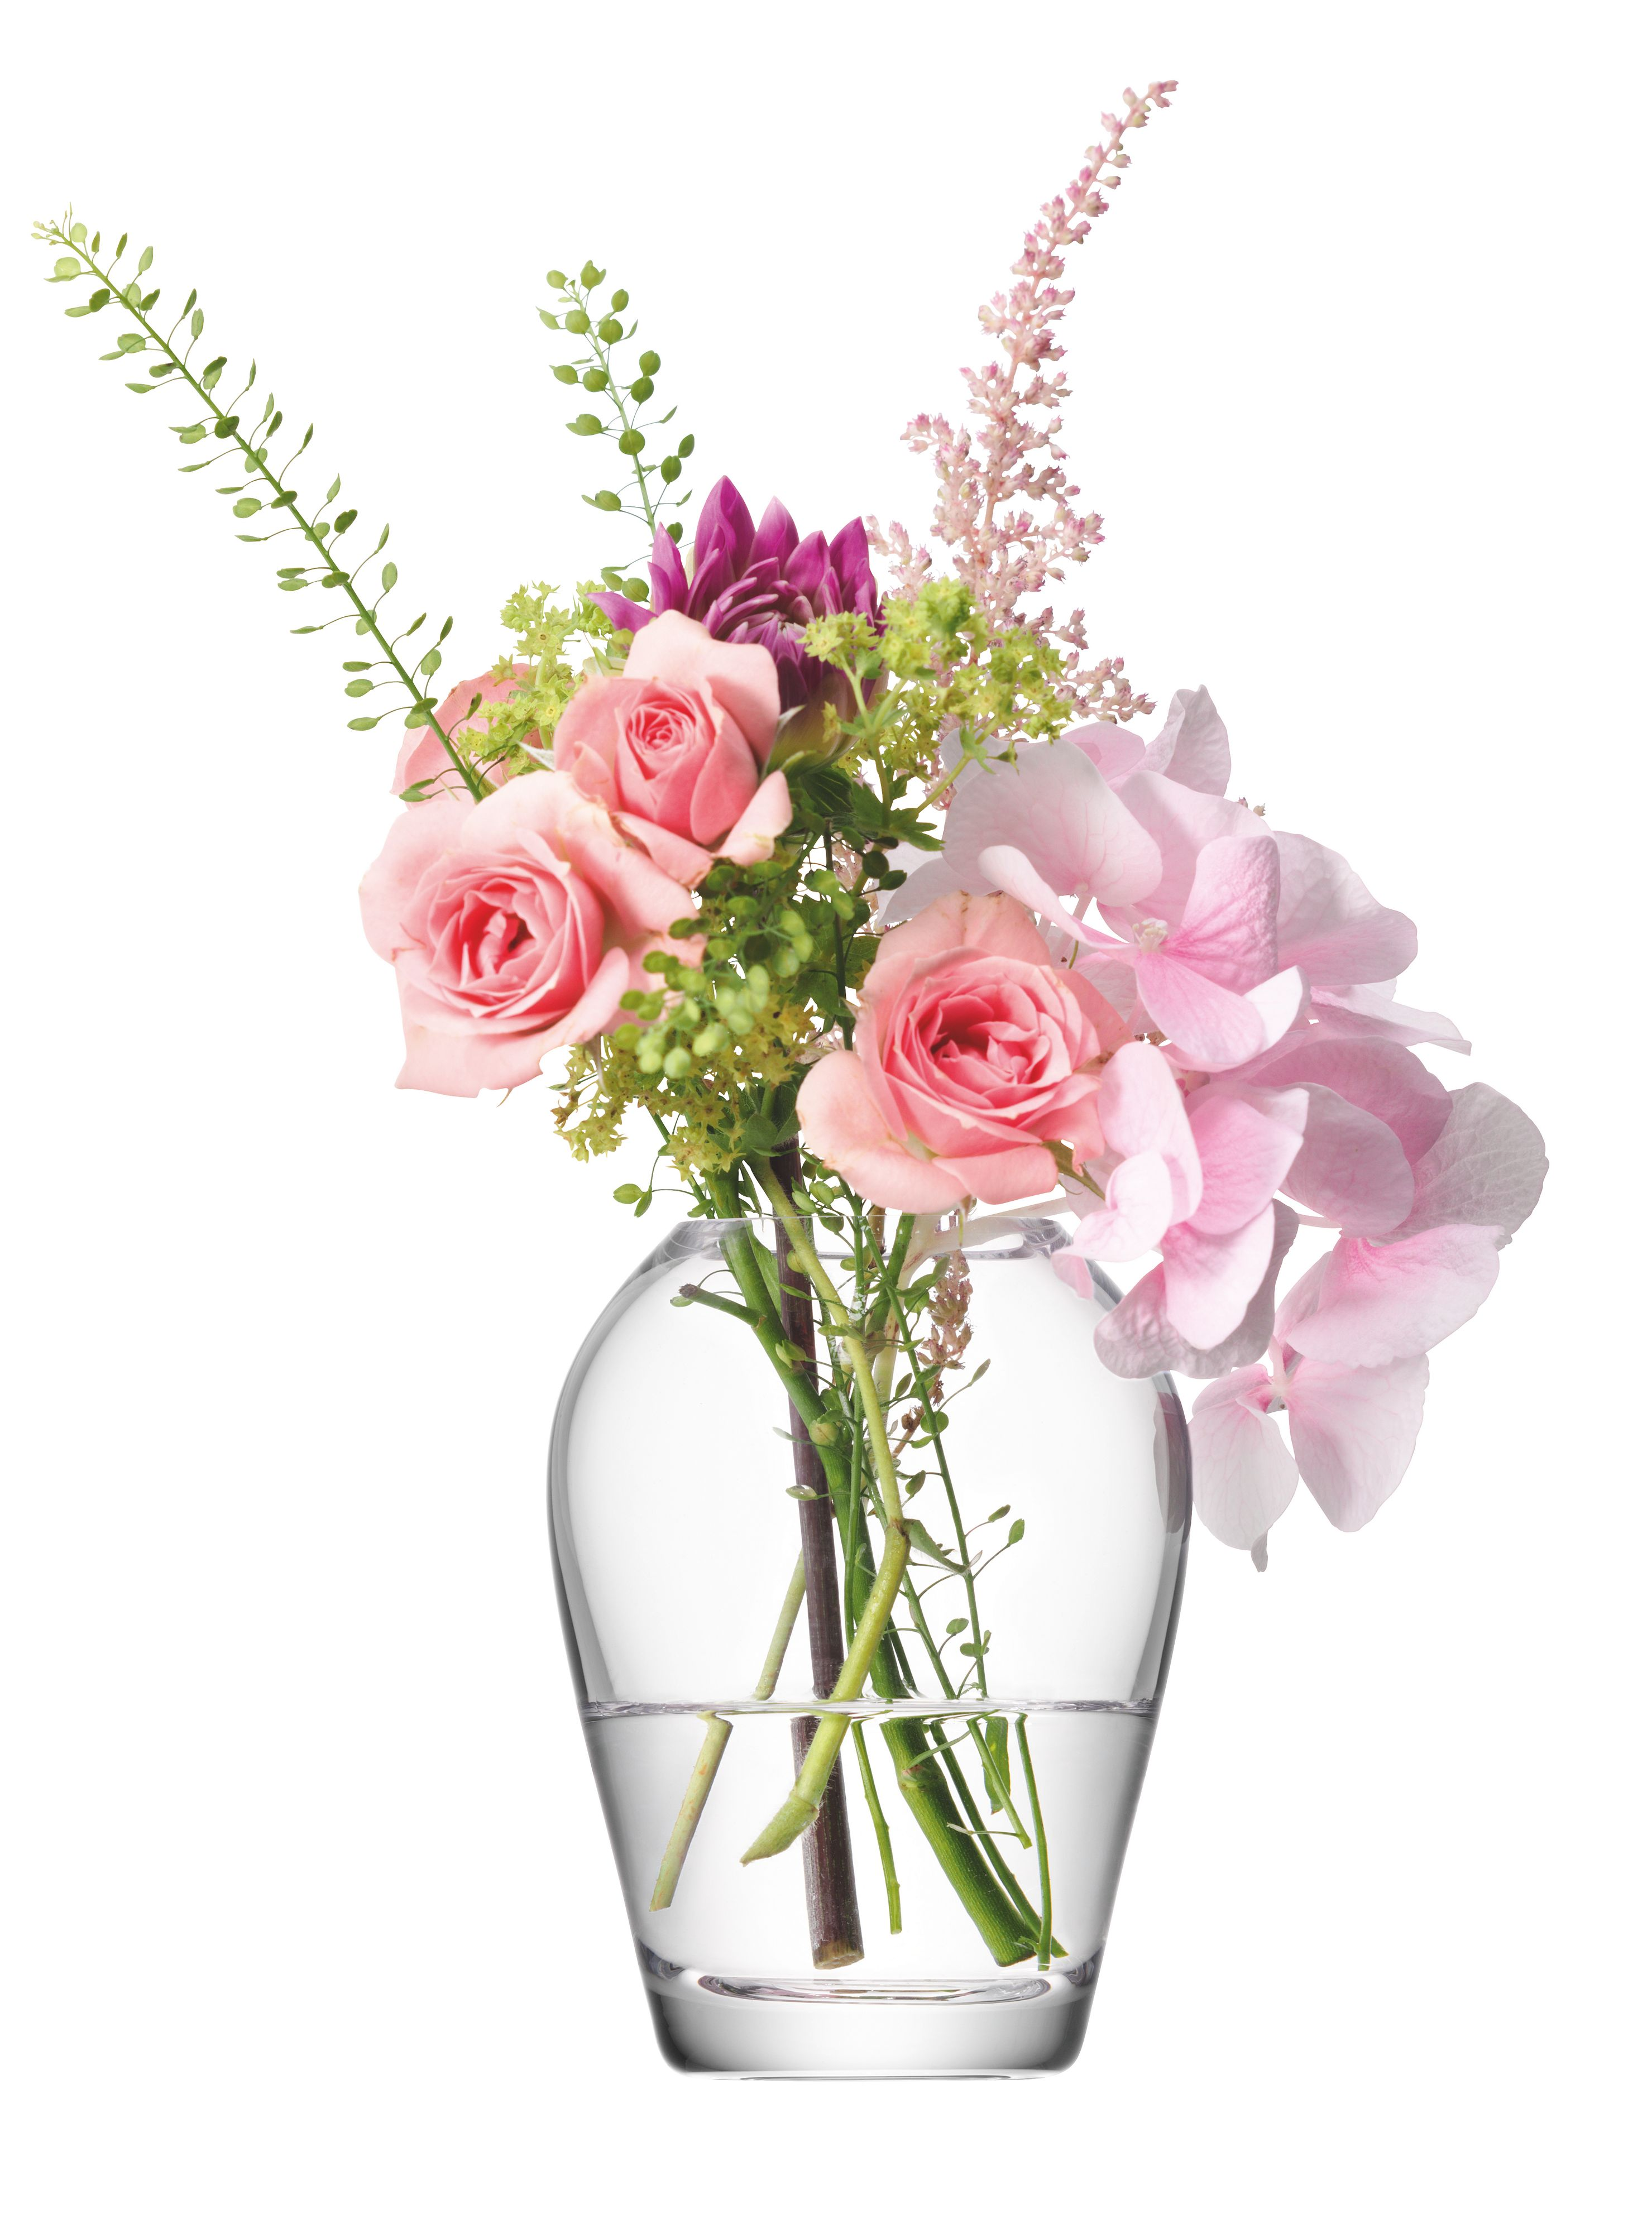 Flower mini bouquet vase height 9.5cm in clear